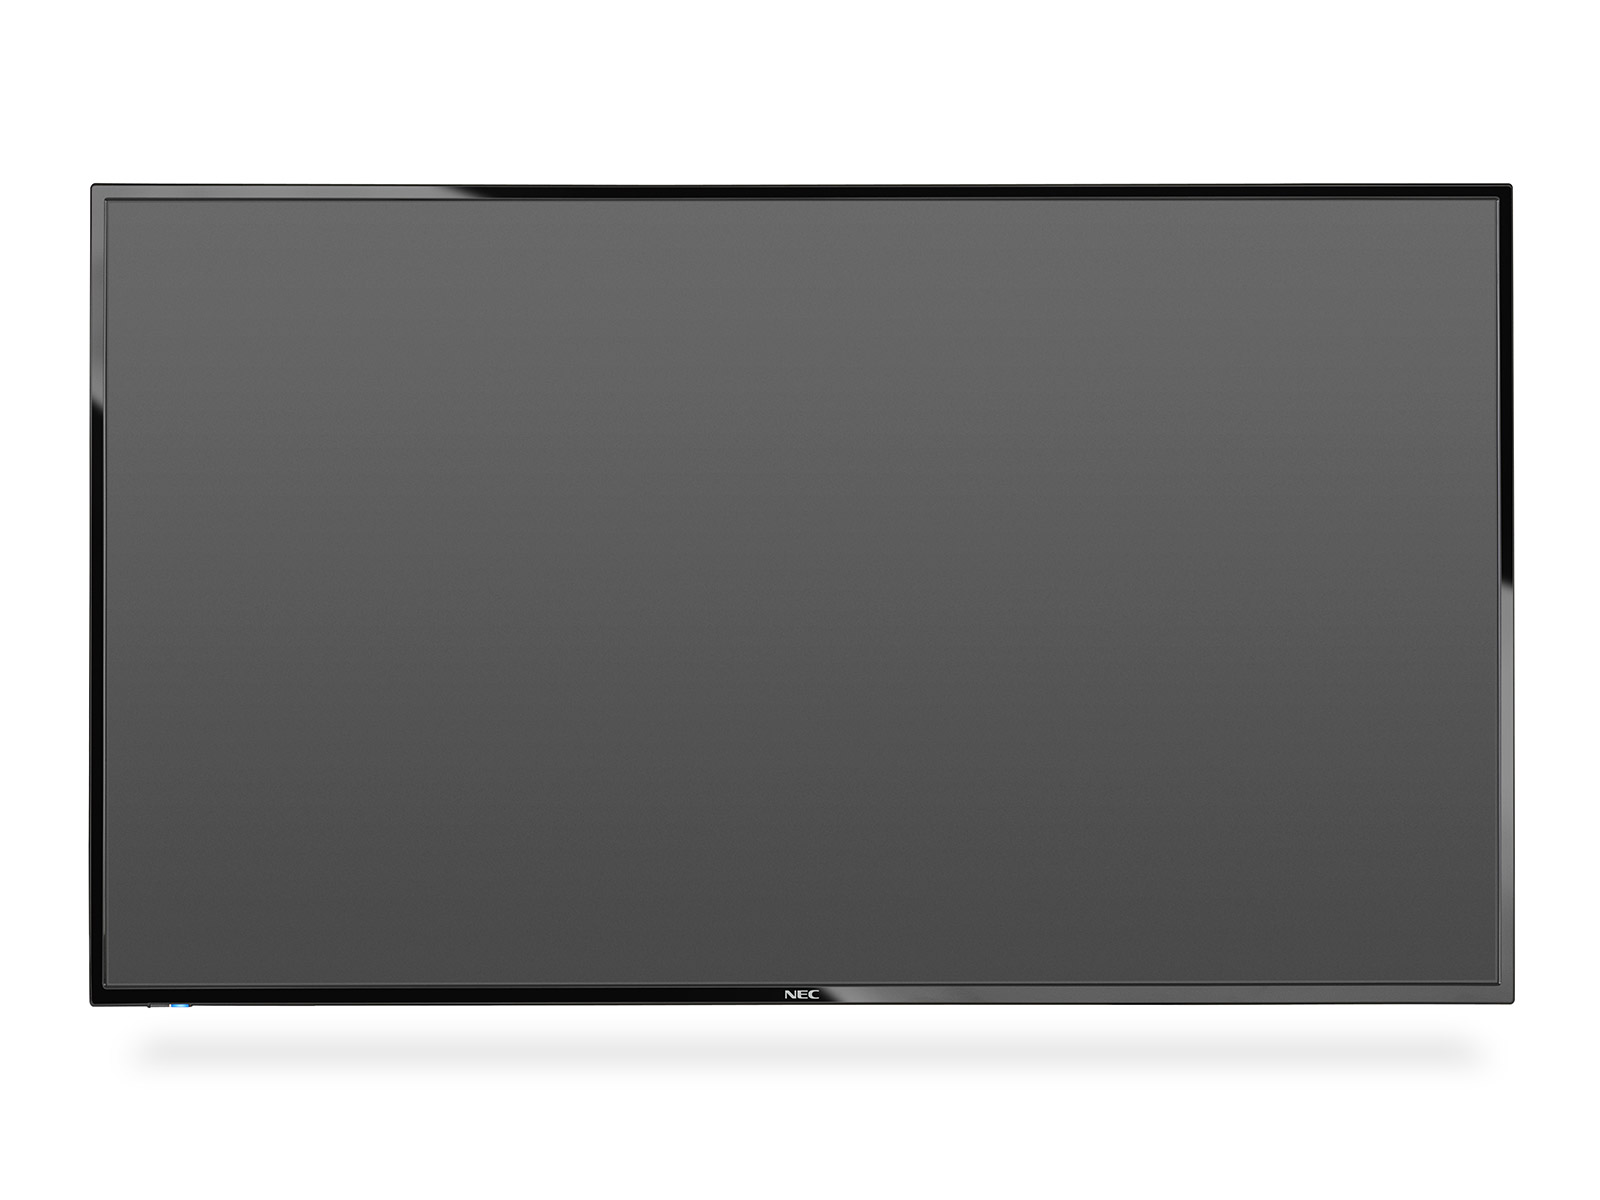 "NEC LFD 50"" MuSy E506 S-IPS,1920x1080,3000:1,350cd,8ms,VGA,3 x HDMI,SPDIF,RS-232C audio 2x10W,12/7"